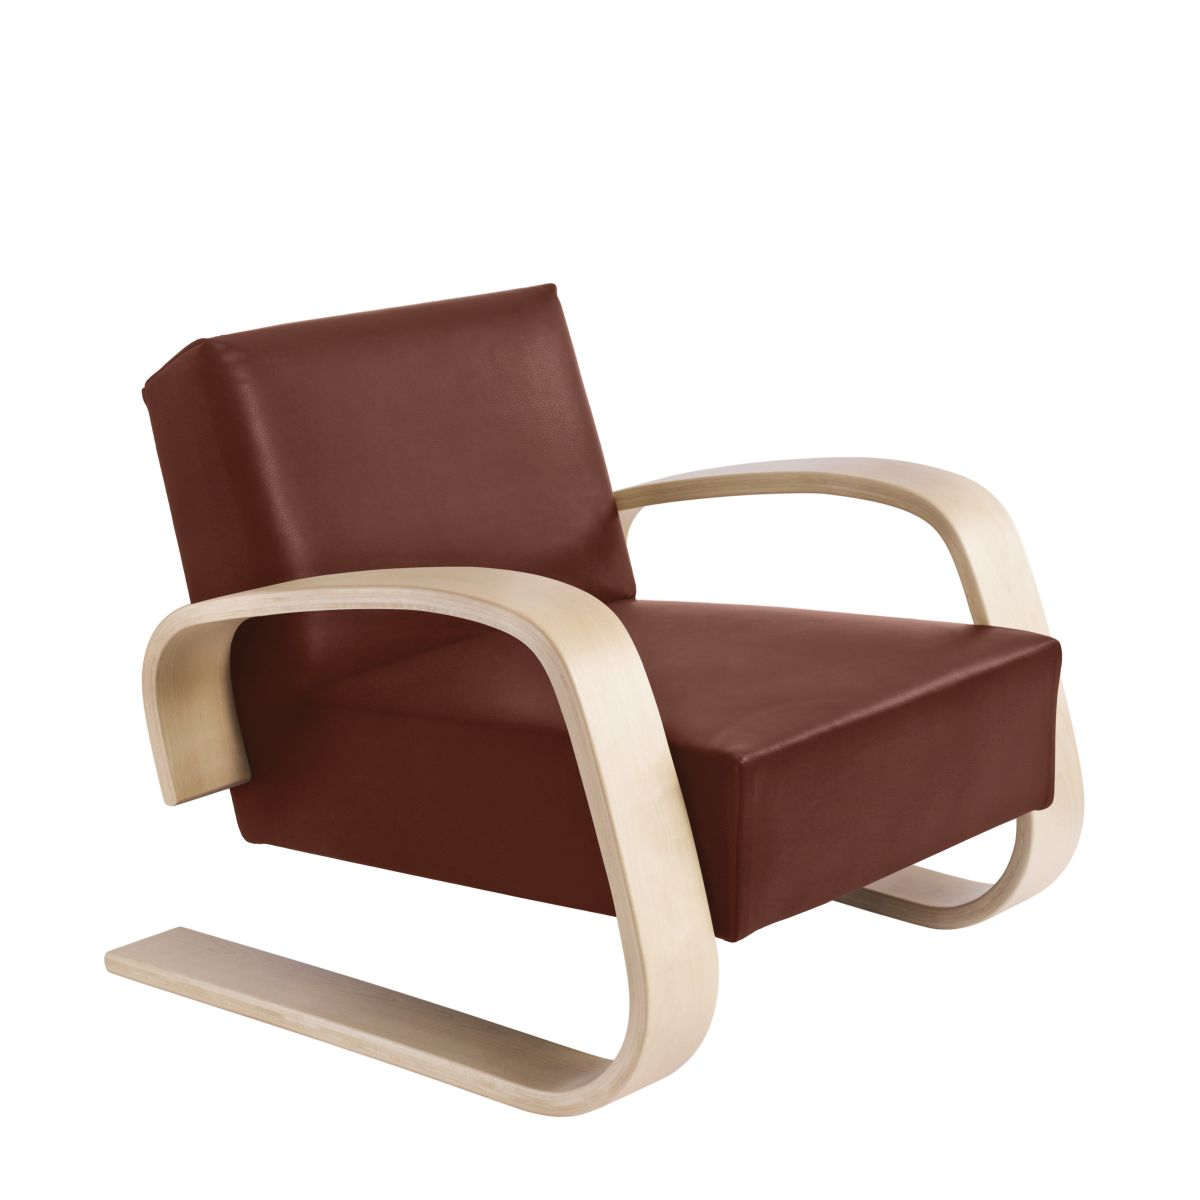 Armchair 400 _Tank  legs clear laquered birch_seat leather indian red